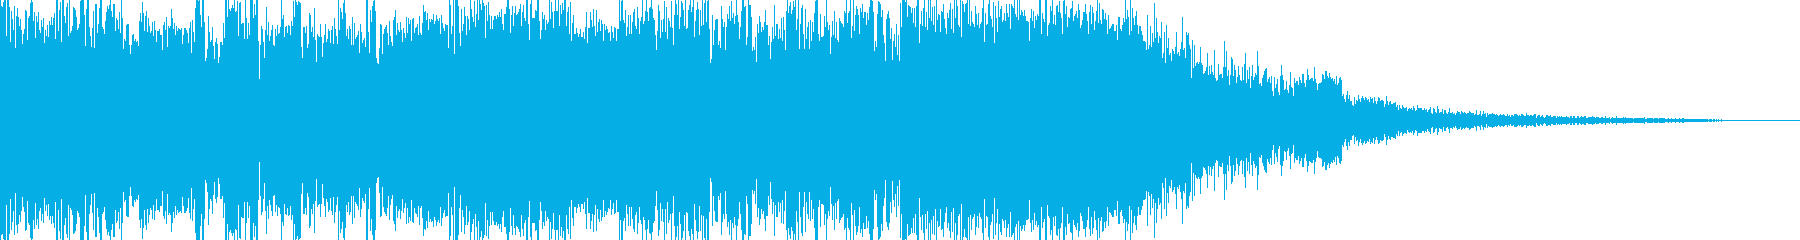 Cool and fashionable electro jingle 2's reproduced waveform